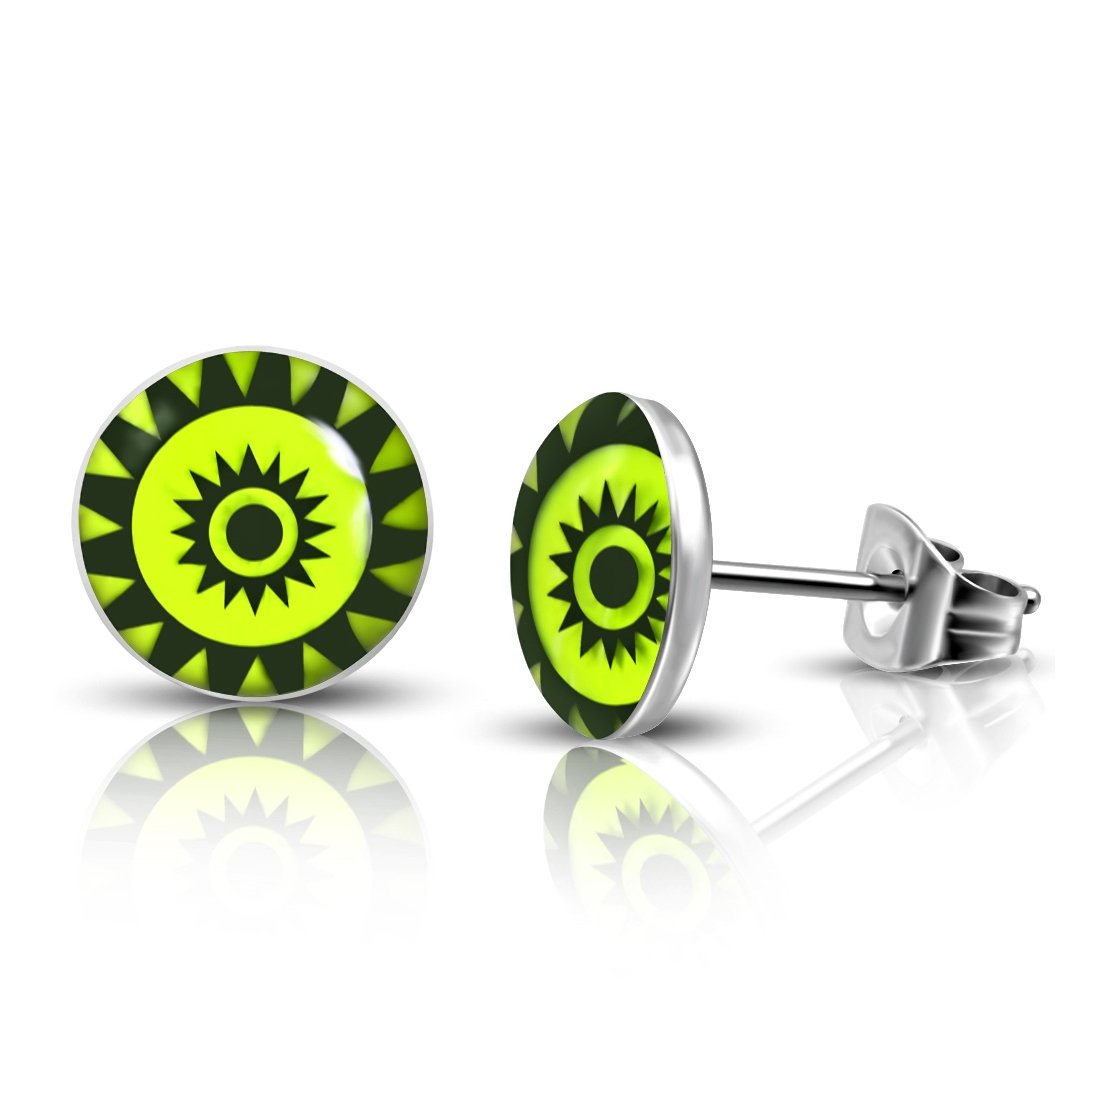 Pair Stainless Steel 3 Color Concentric Sun-Emblem Lemon Green Circle Stud Earrings